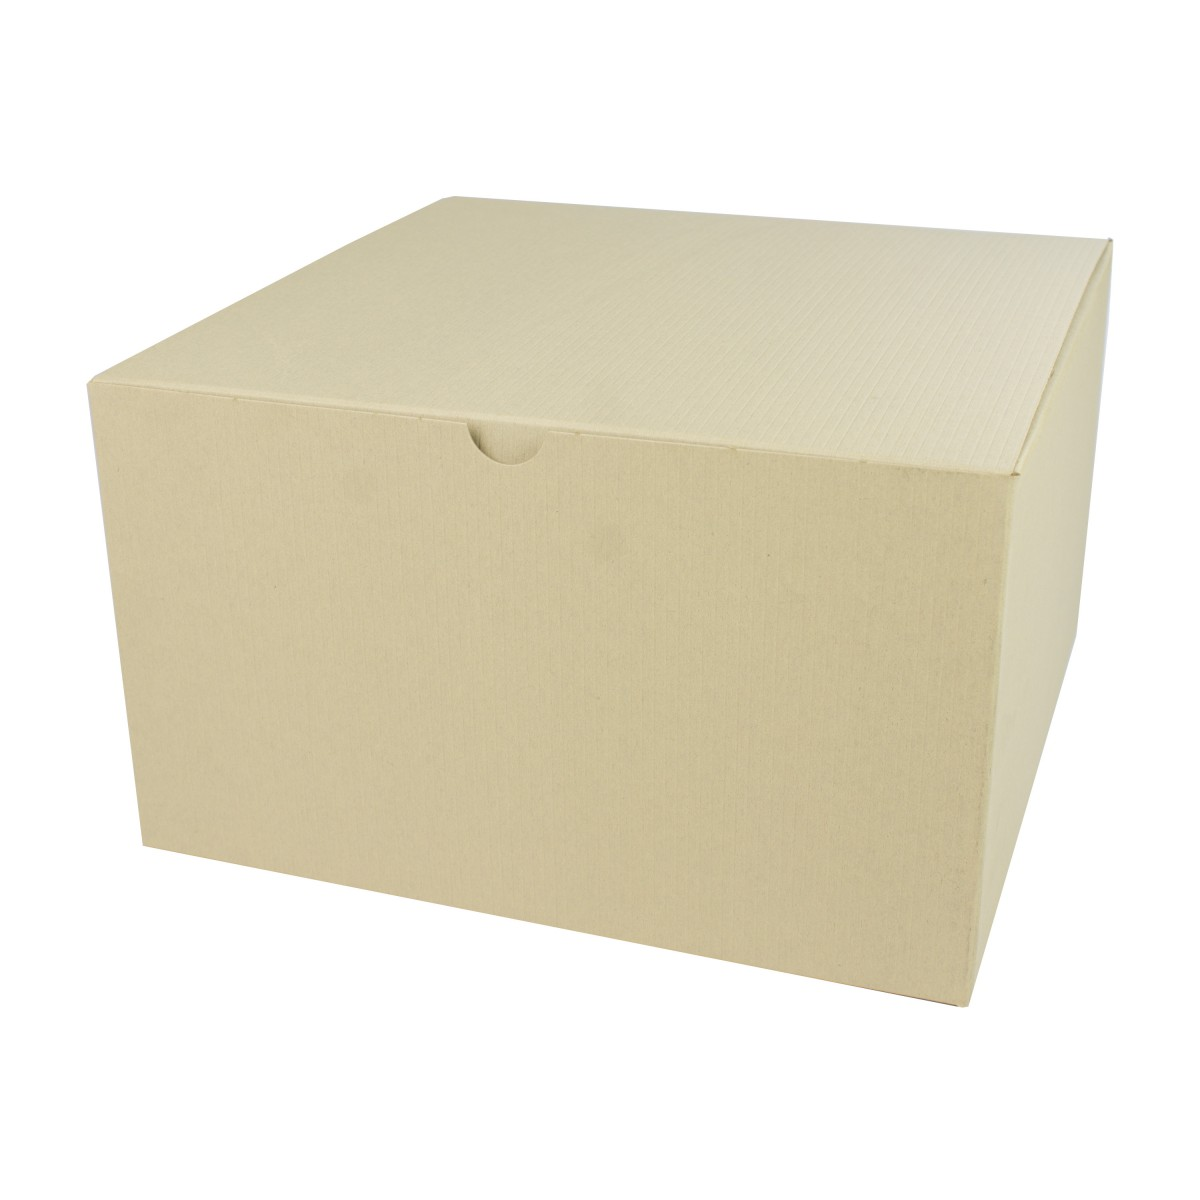 10 x 10 x 6 OATMEAL TINTED TUCK-TOP GIFT BOXES